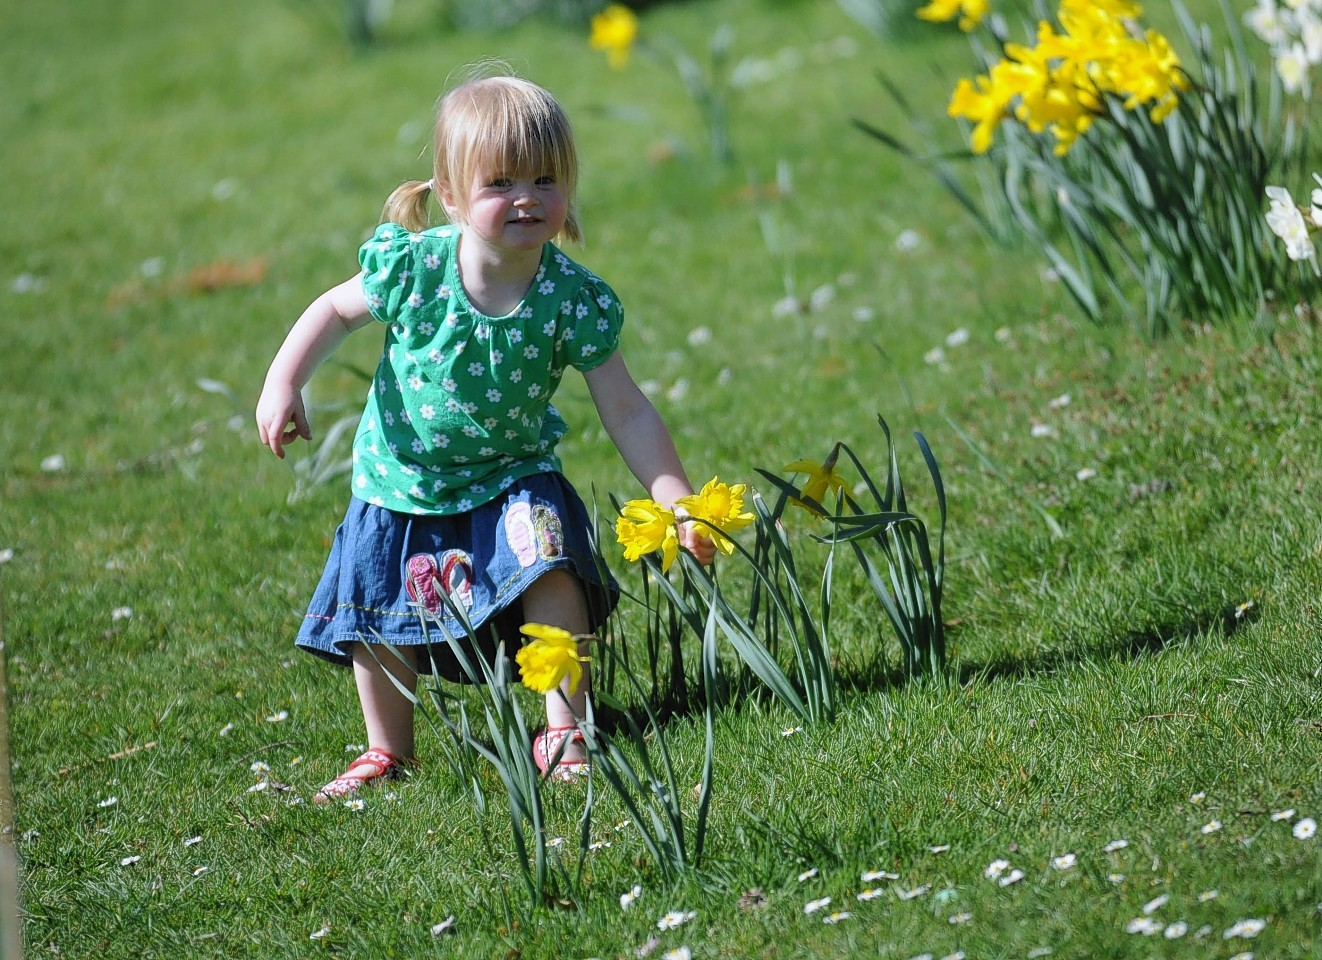 Little Charlotte Robertson, aged 2 years-old enjoying the weather in 2012